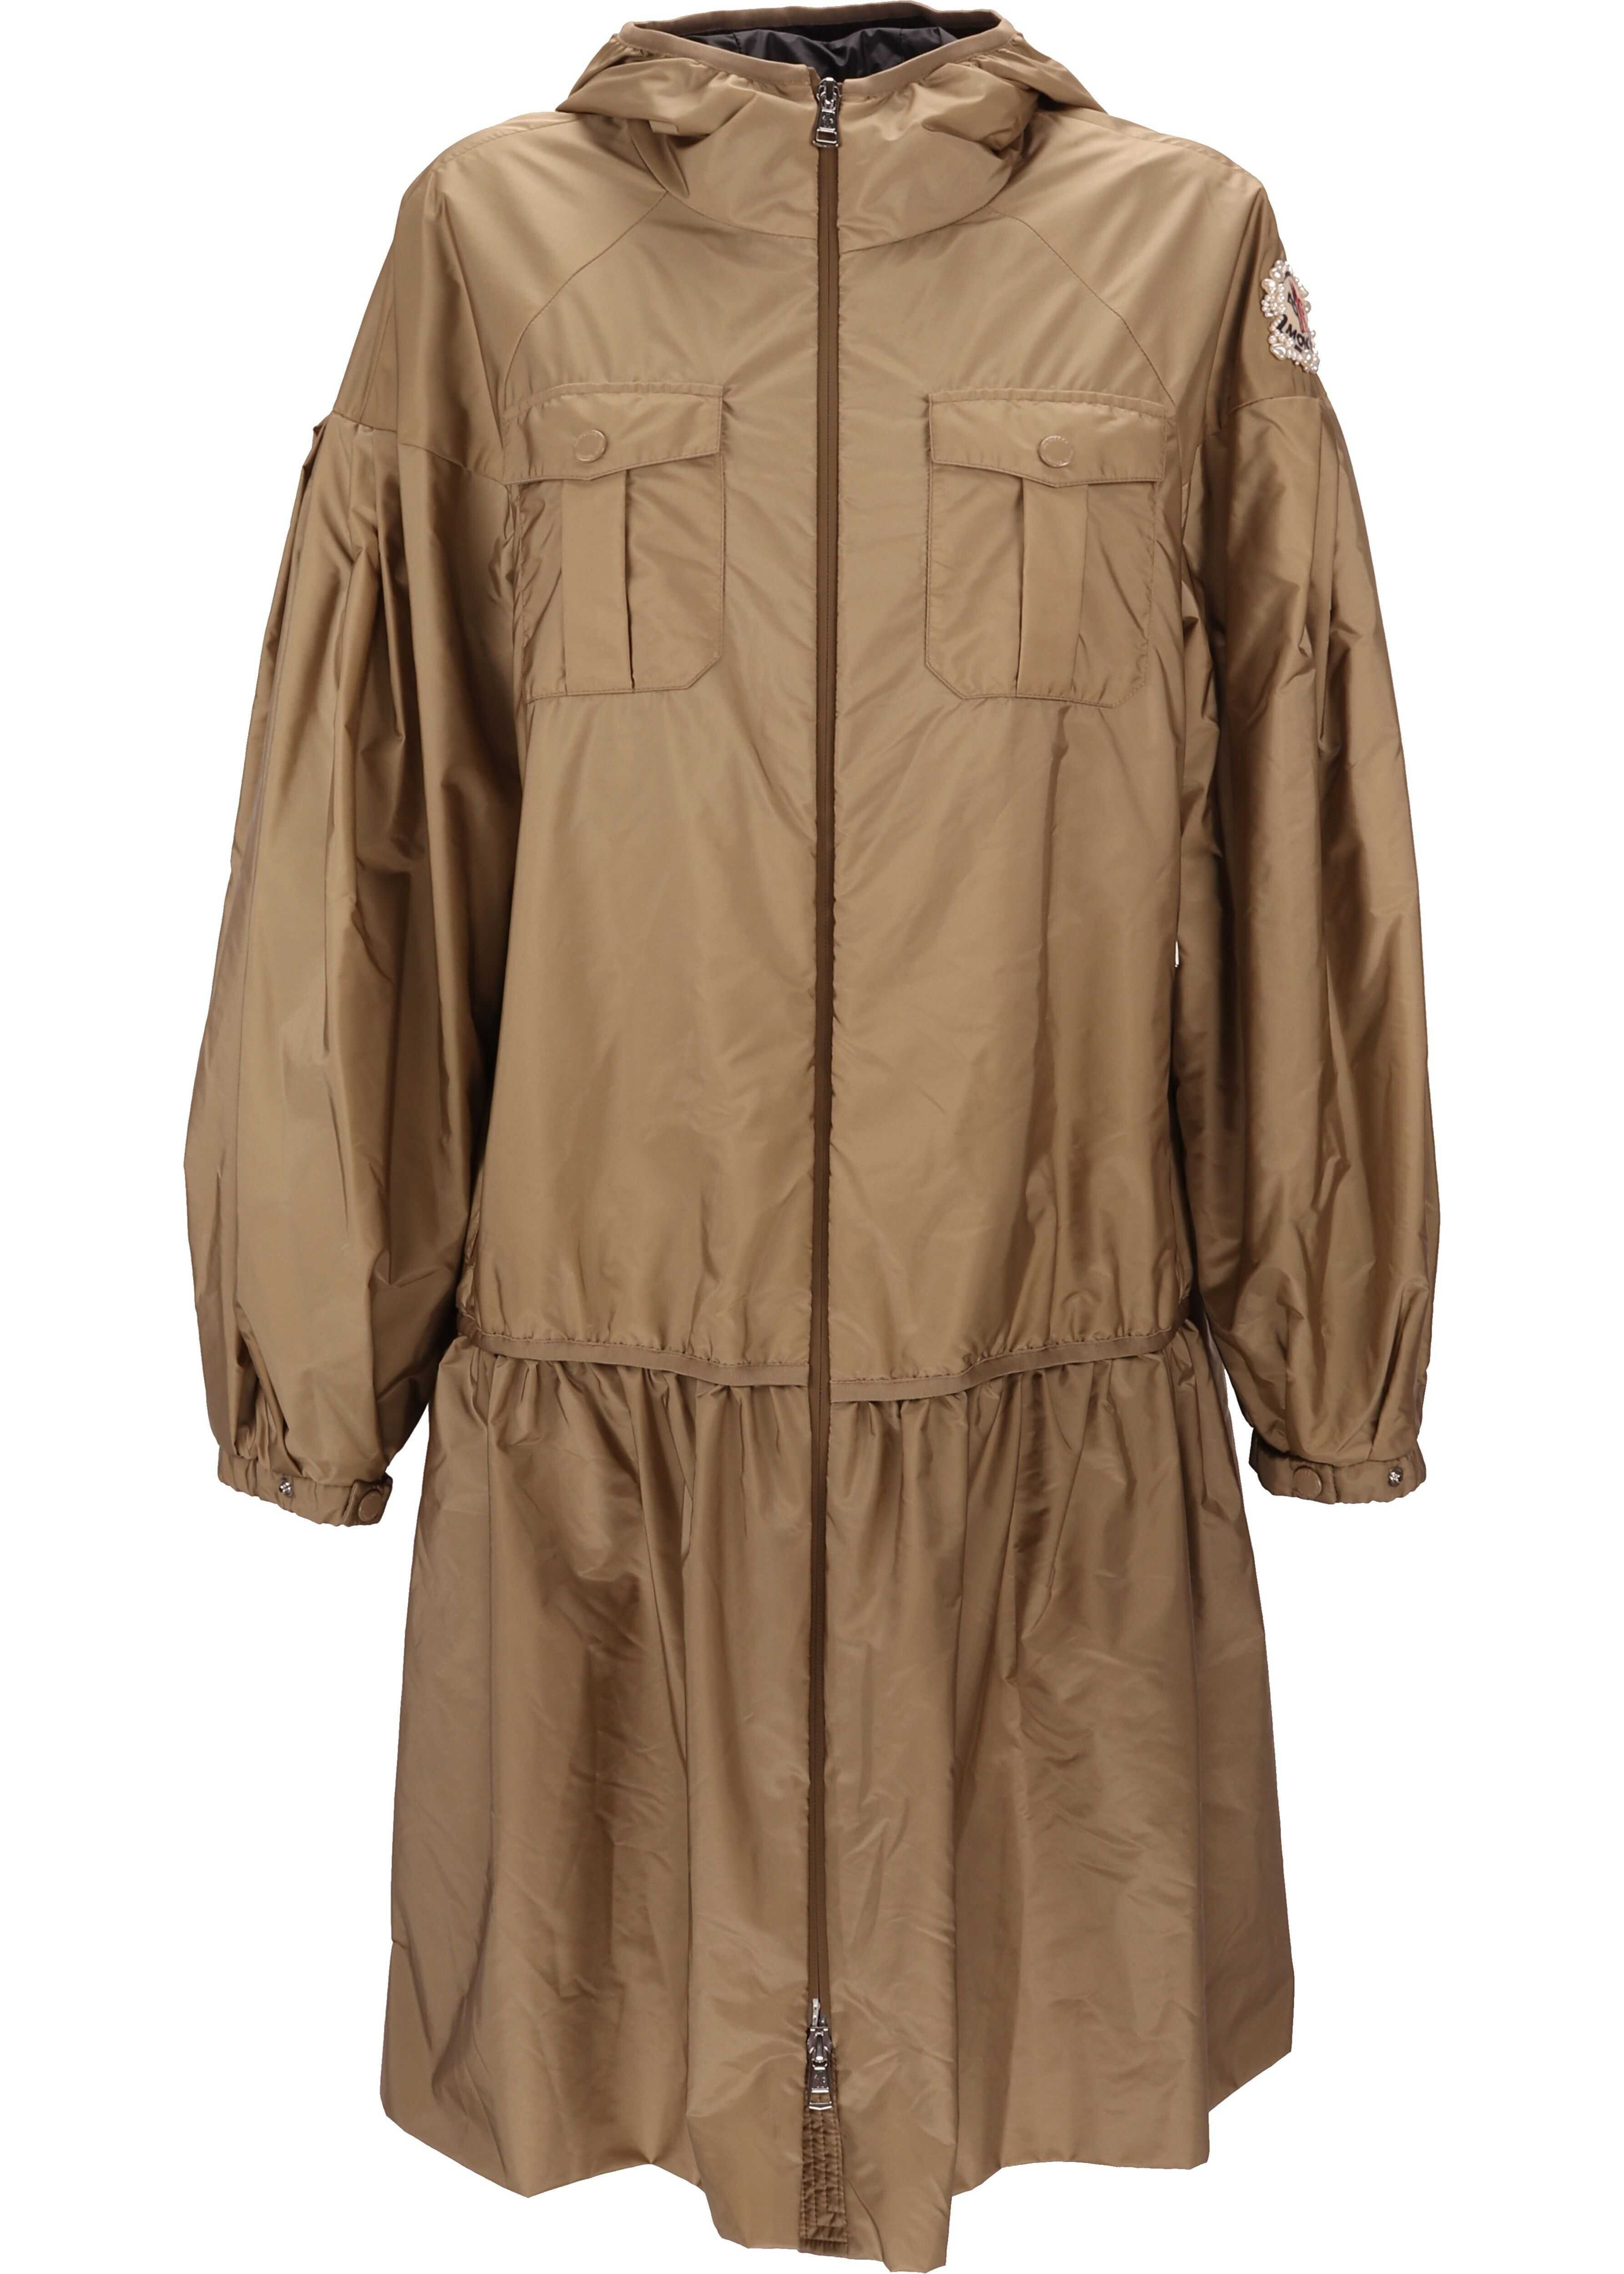 Moncler Polyester Outerwear Jacket BEIGE